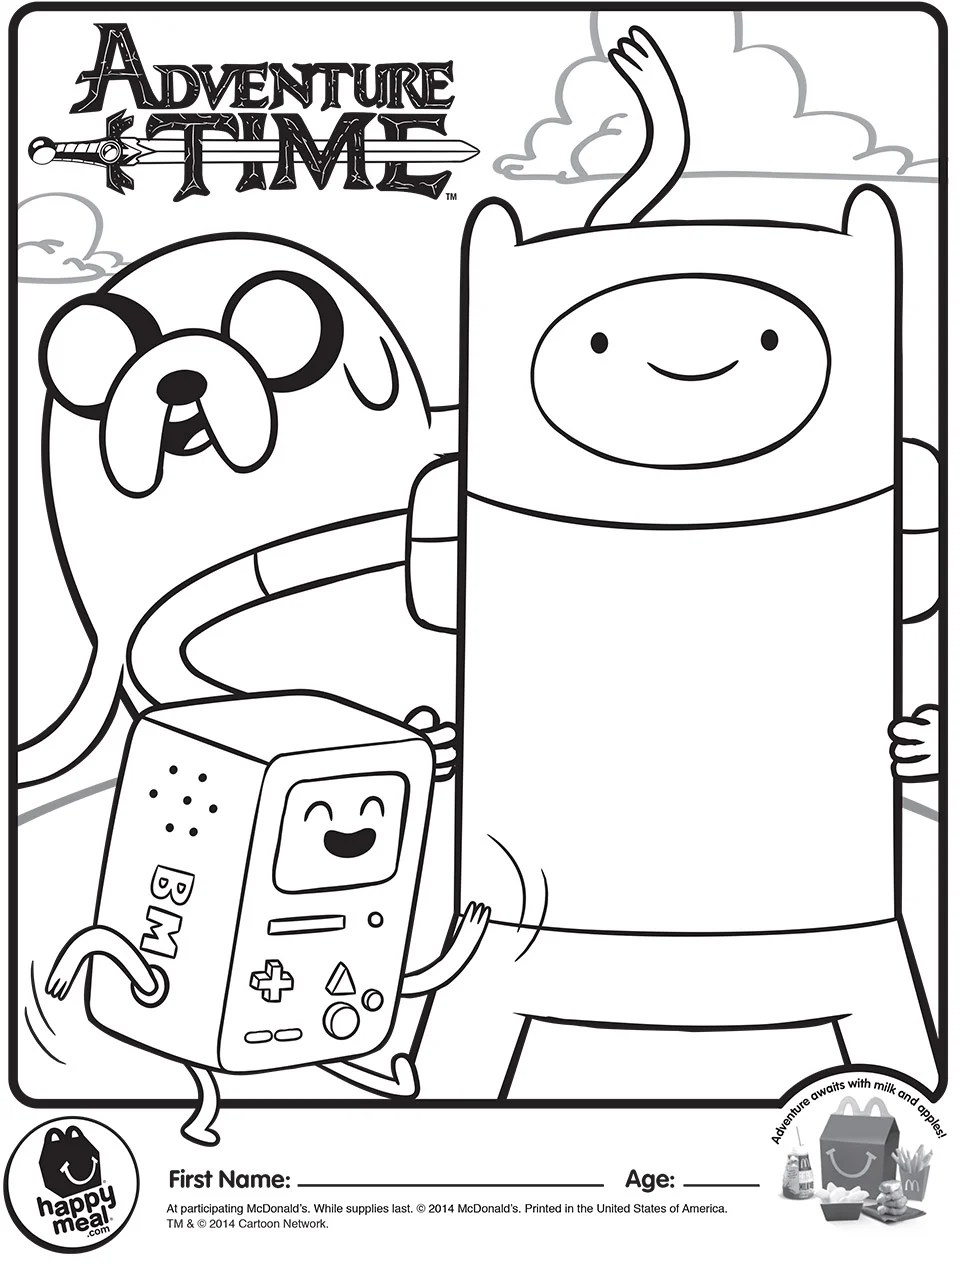 s adventure time happy meal toys are almost here